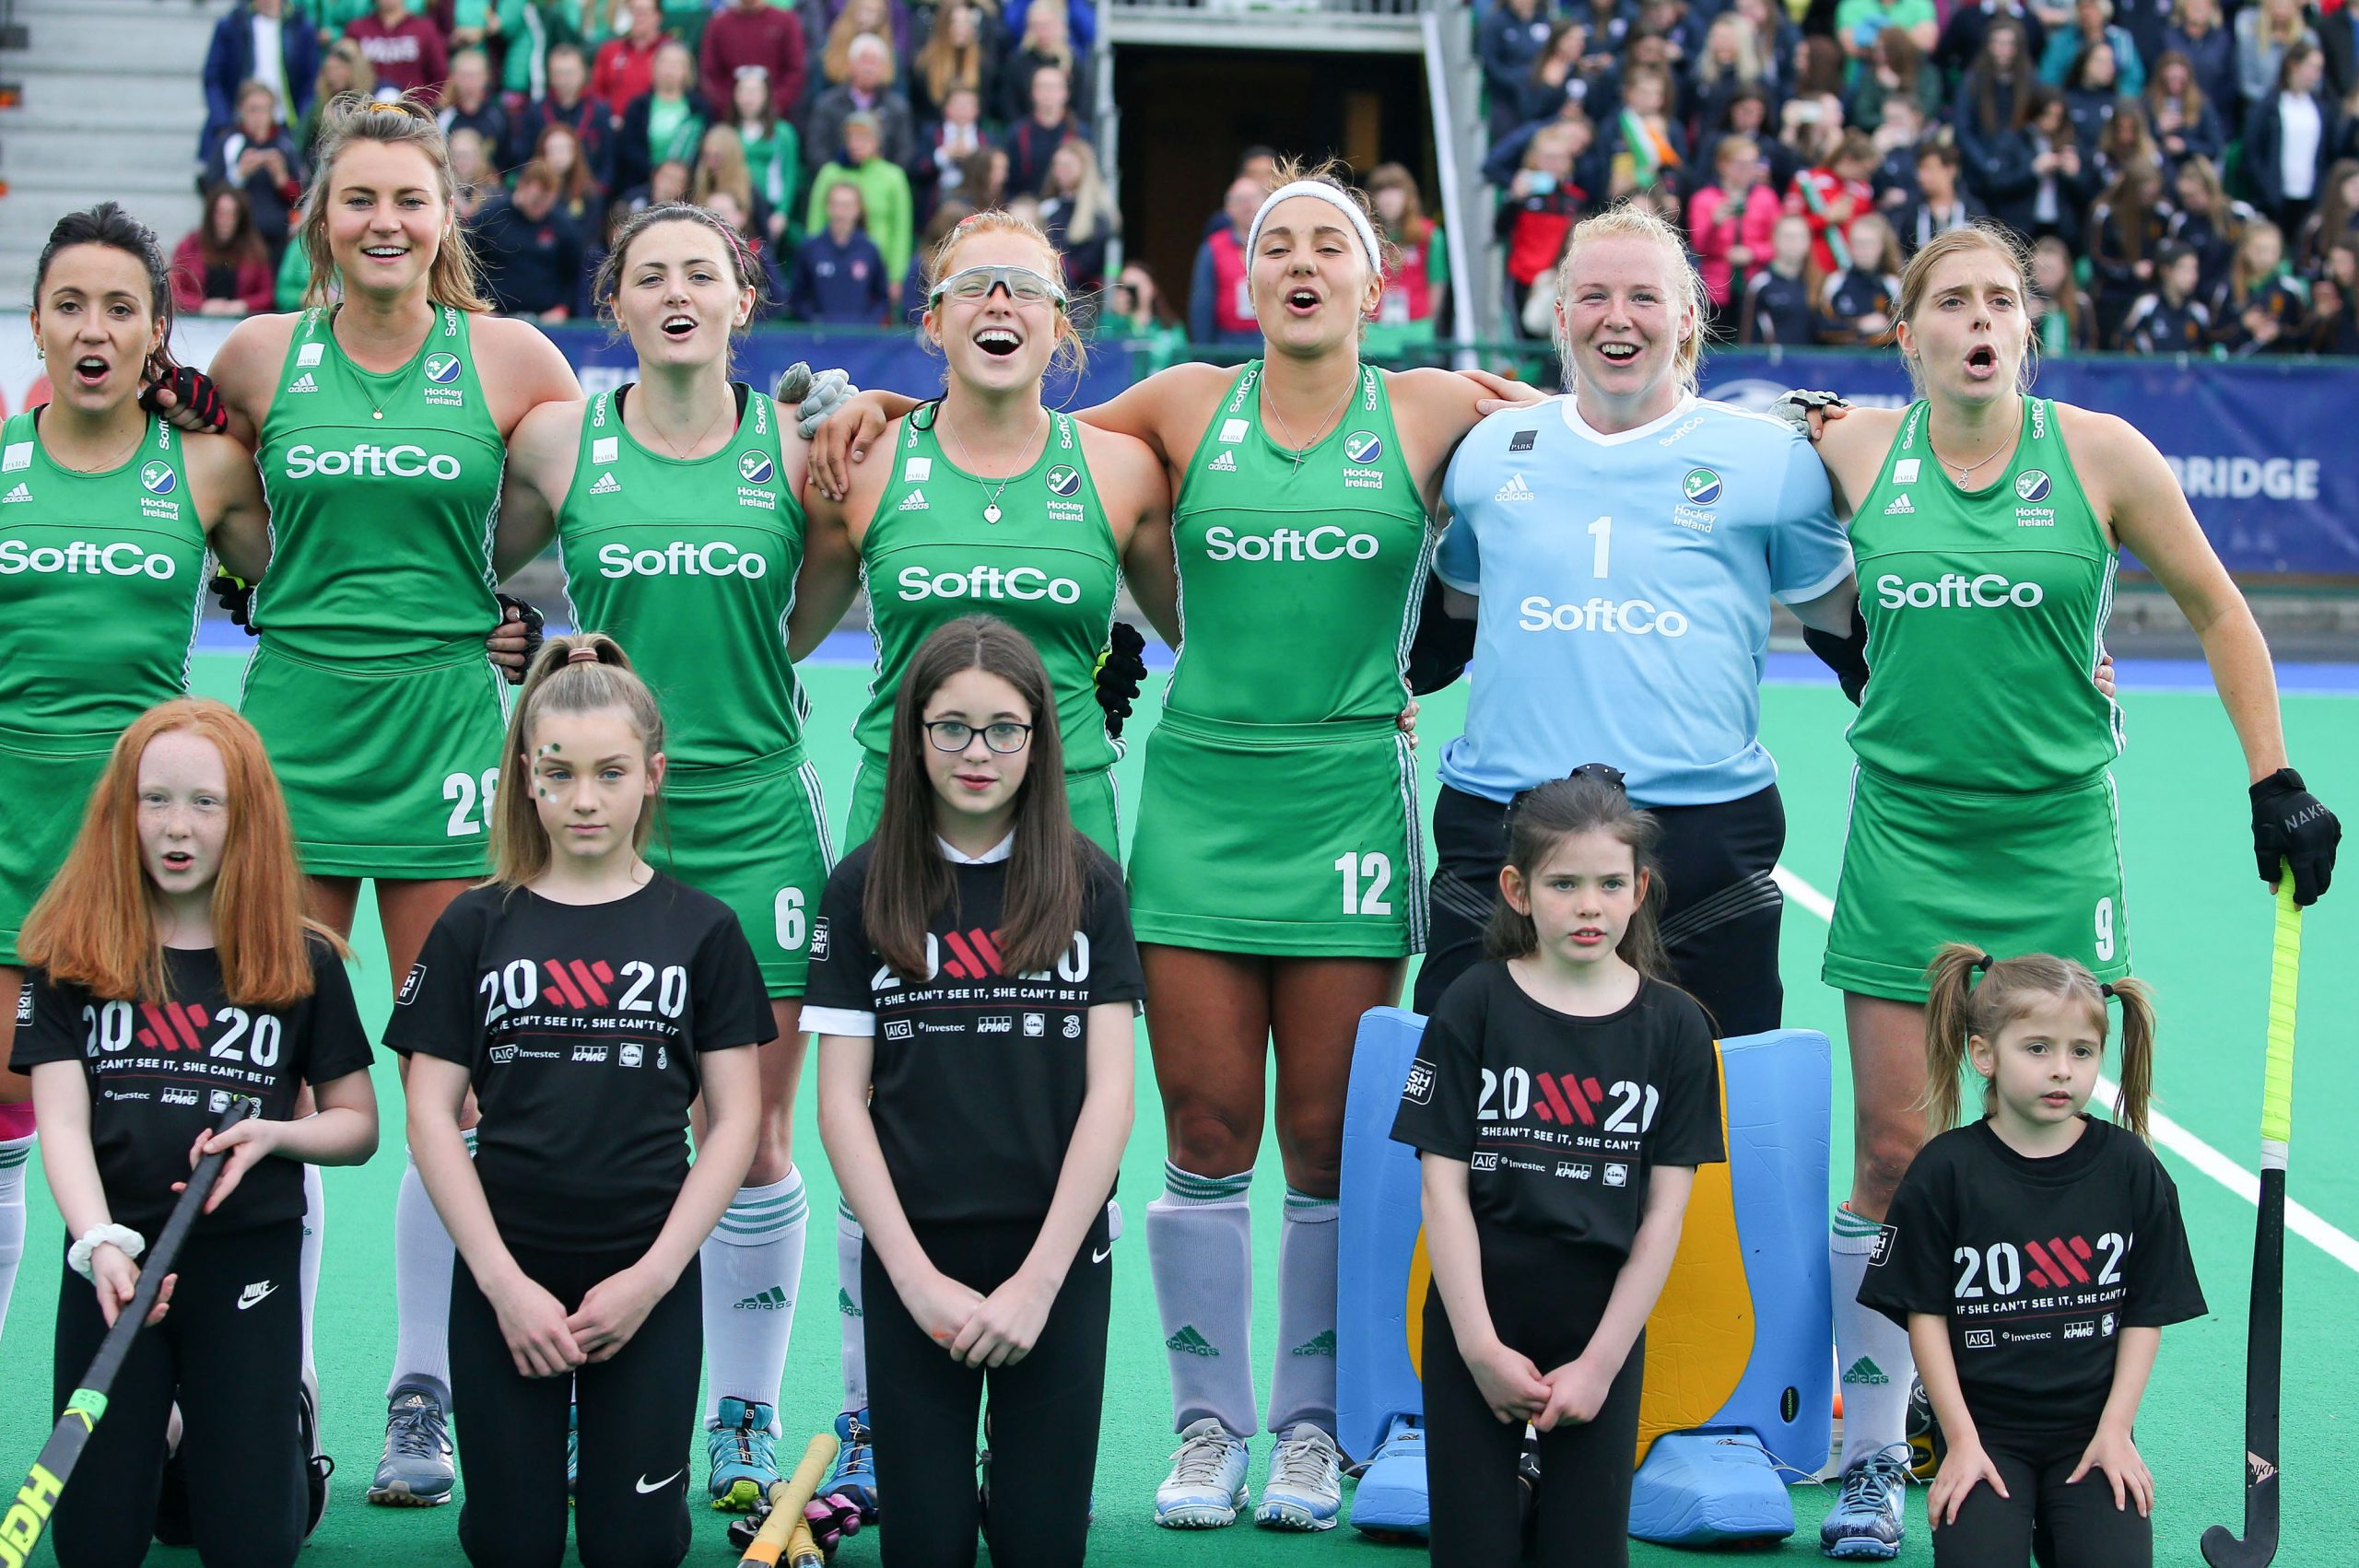 Anthem line up. OFlanagan Duke Upton Tice McFerran and Mullan at the FIH Series Finals June 2019 scaled